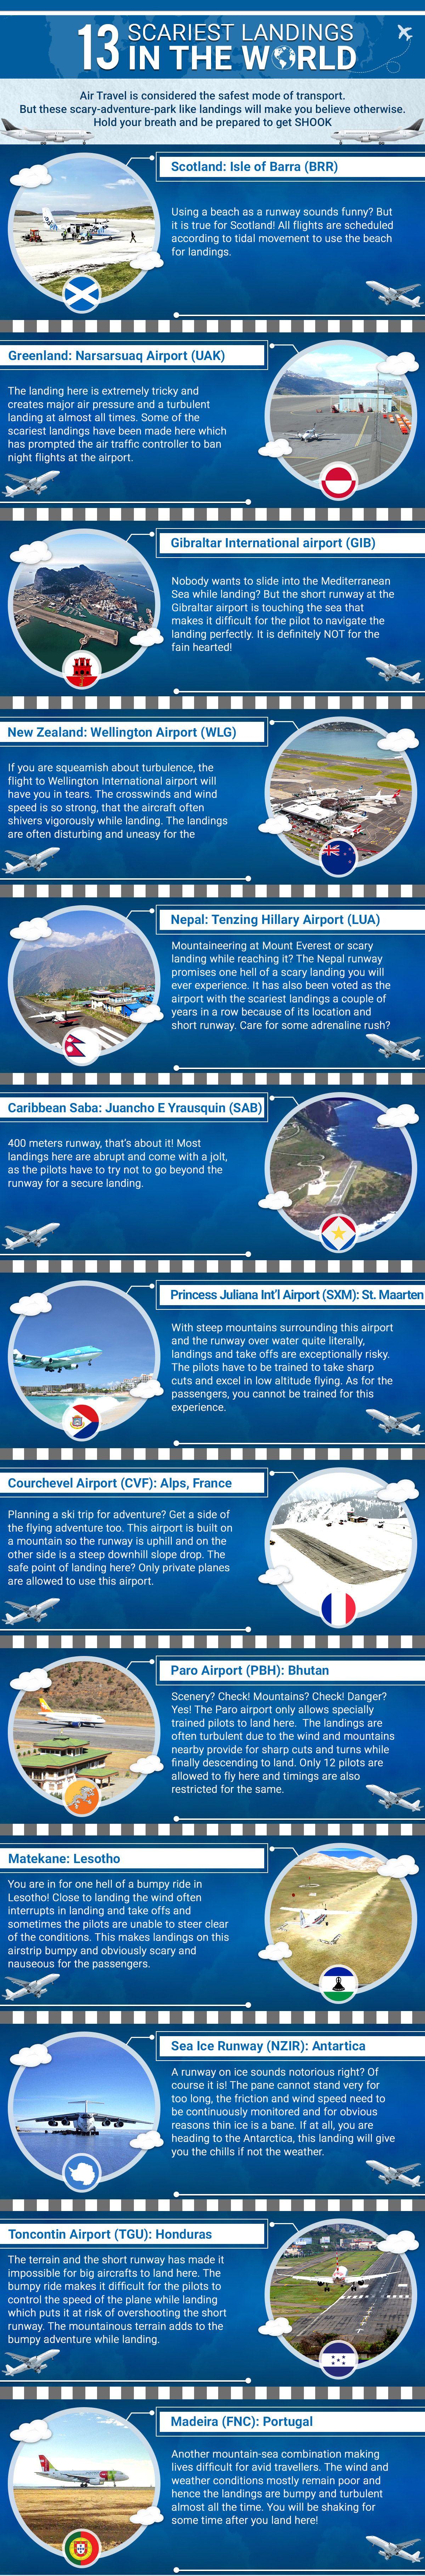 13 Airplane Landing Runways that Can Scare Even the Bravest! - Infographic